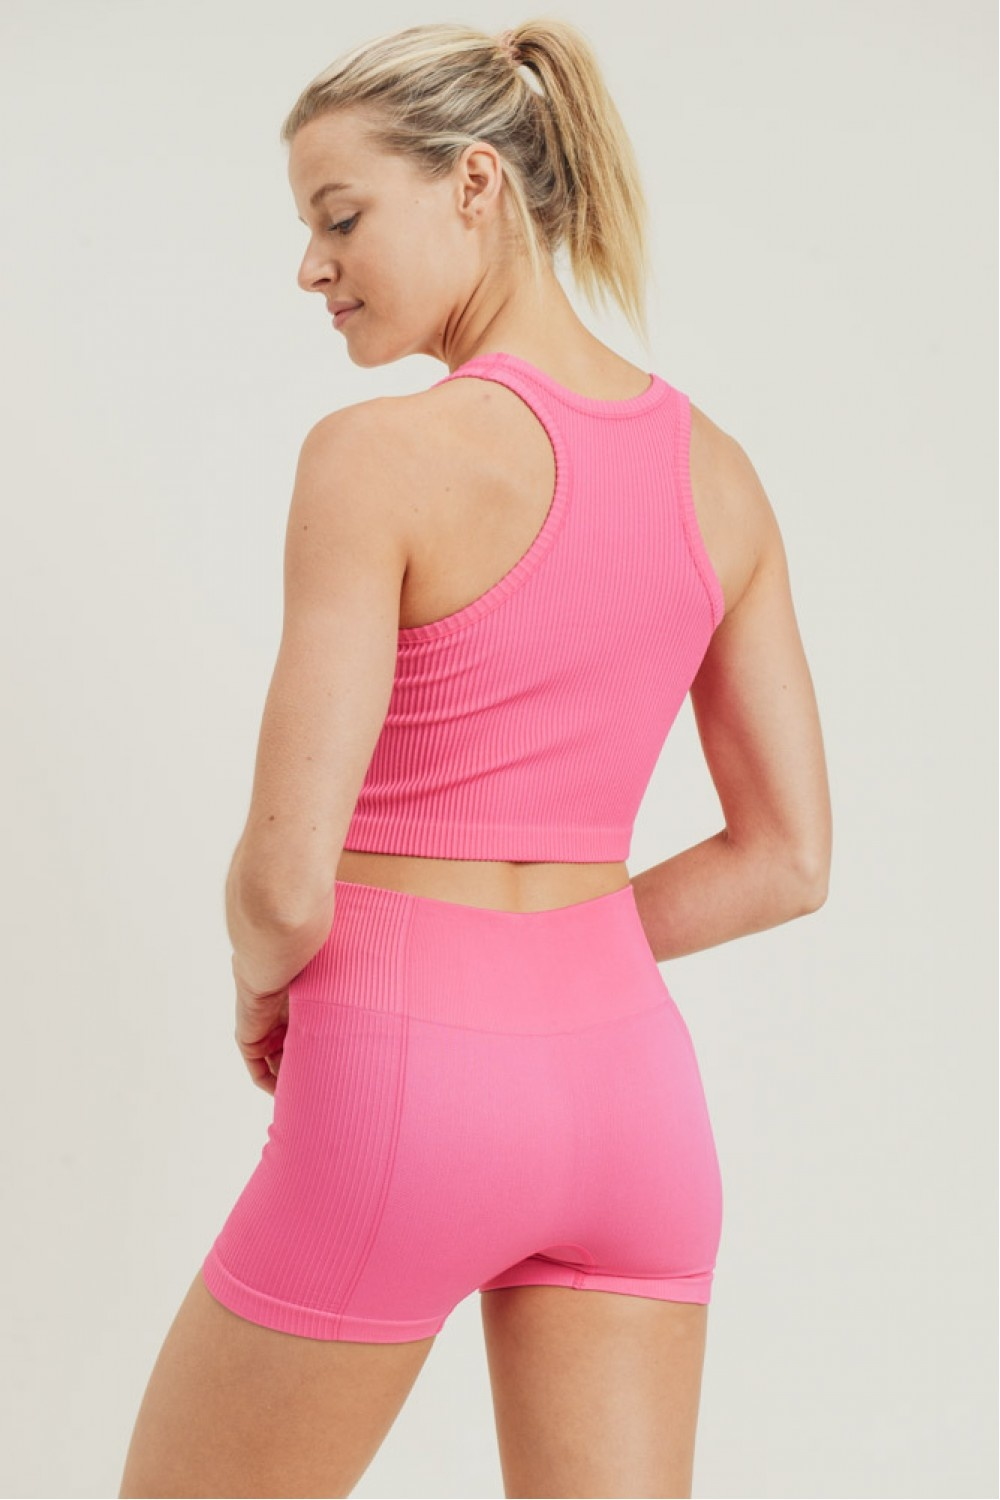 Ribbed and Ready Racerback Workout Tank (MORE COLORS)